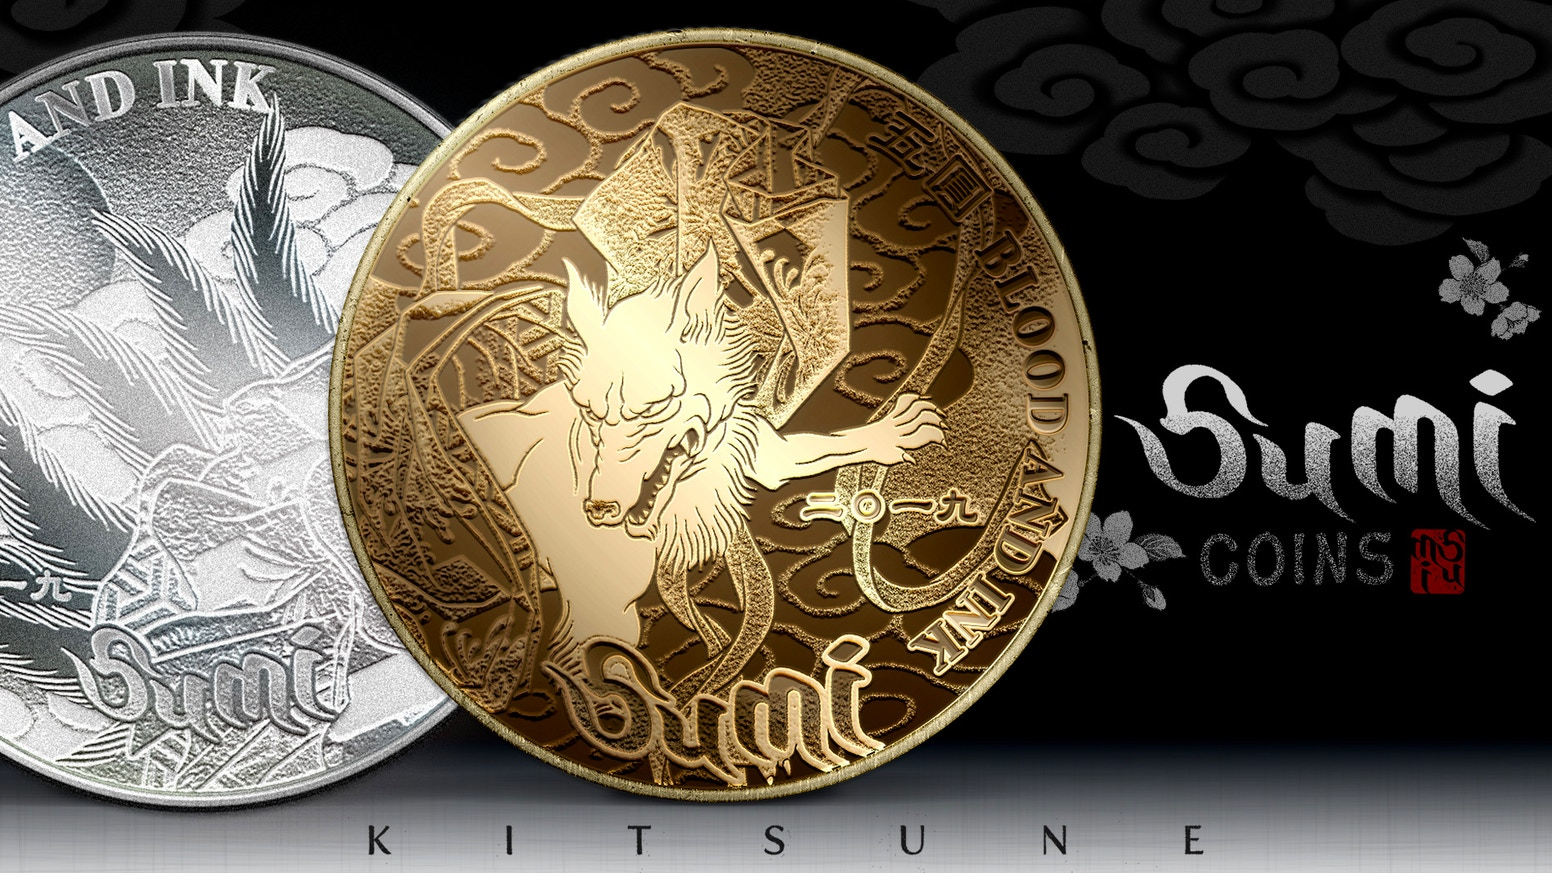 Pushing the limits of coin design again with Traditional Japanese tattoo art. An EDC staple made in USA.